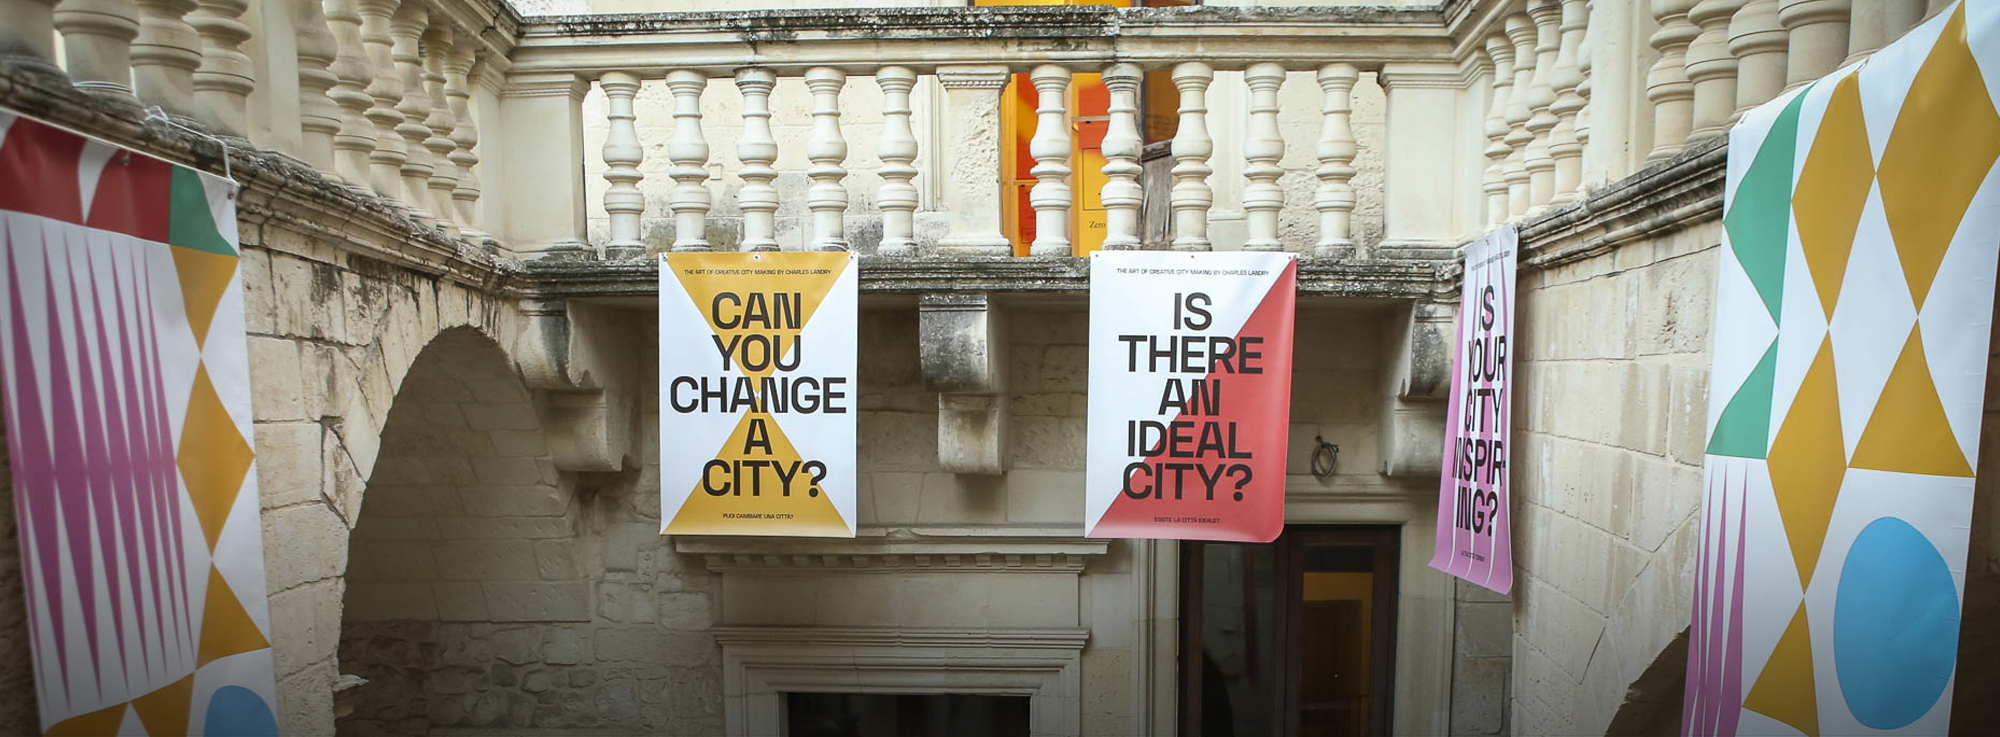 Lecce: The art of creative city making by Charles Landry